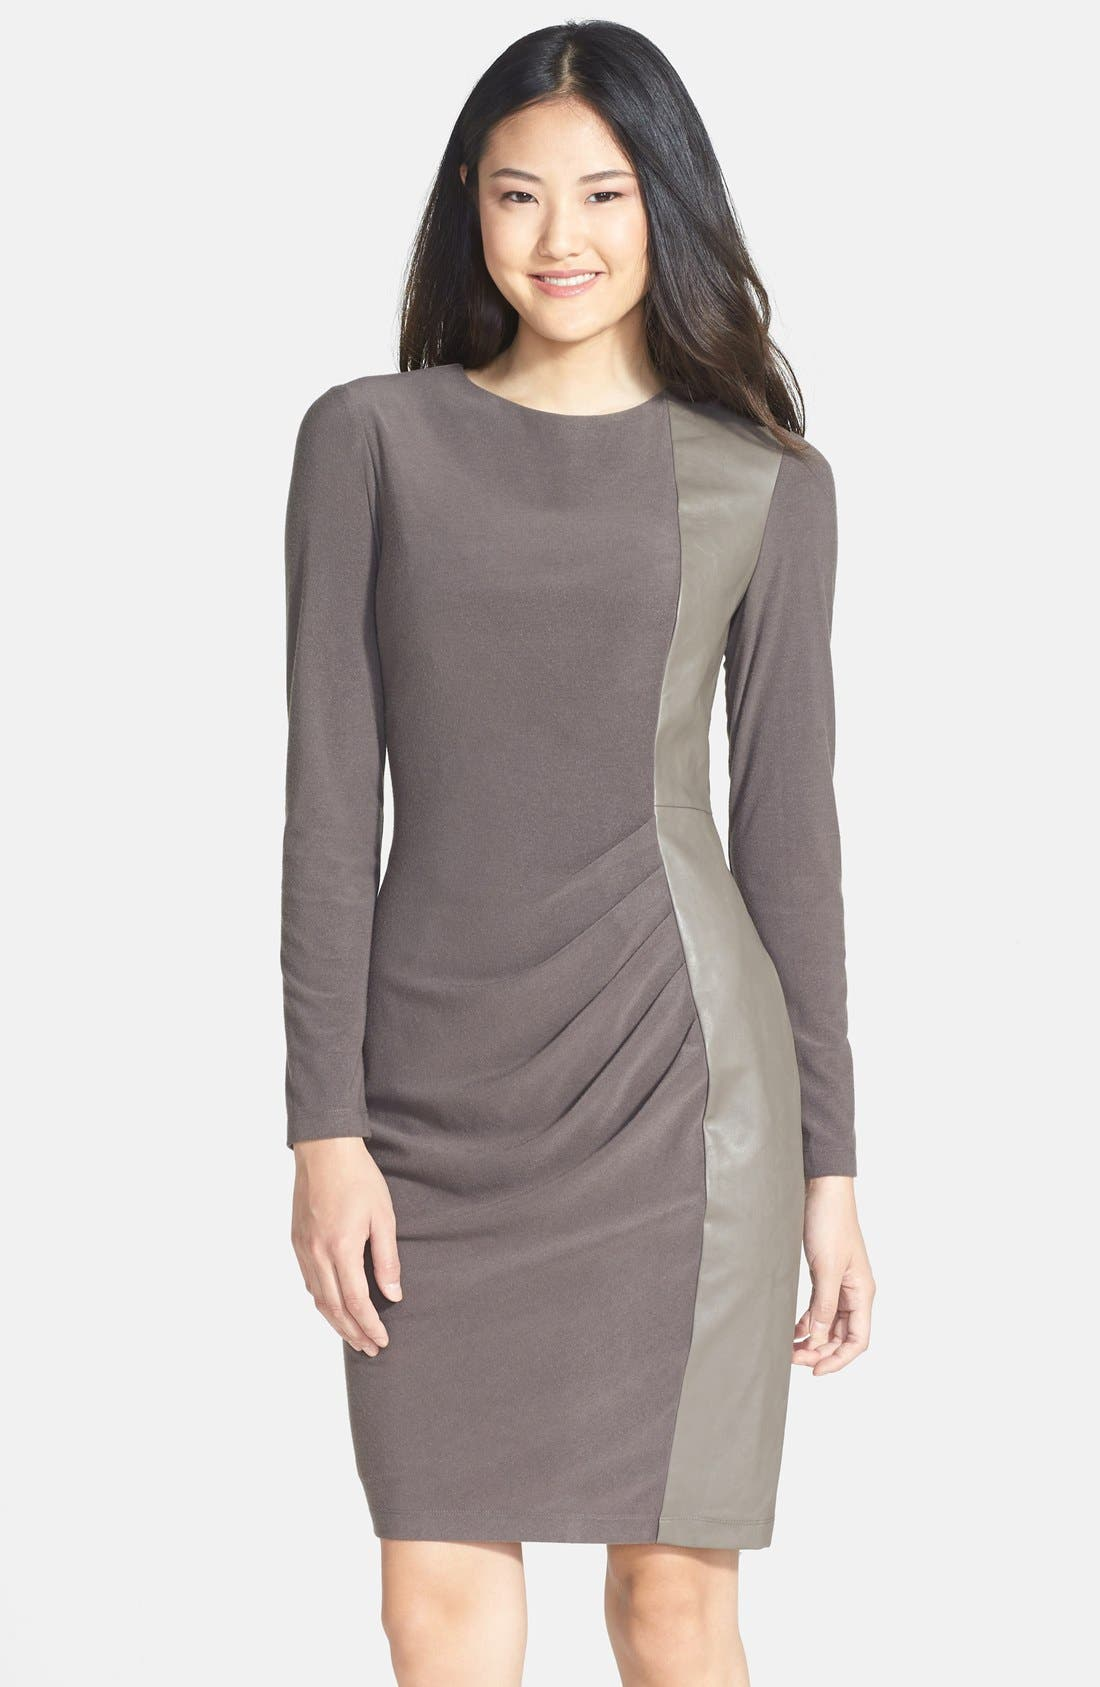 Main Image - Vince Camuto Faux Leather Panel Ponte Sheath Dress (Regular & Petite)